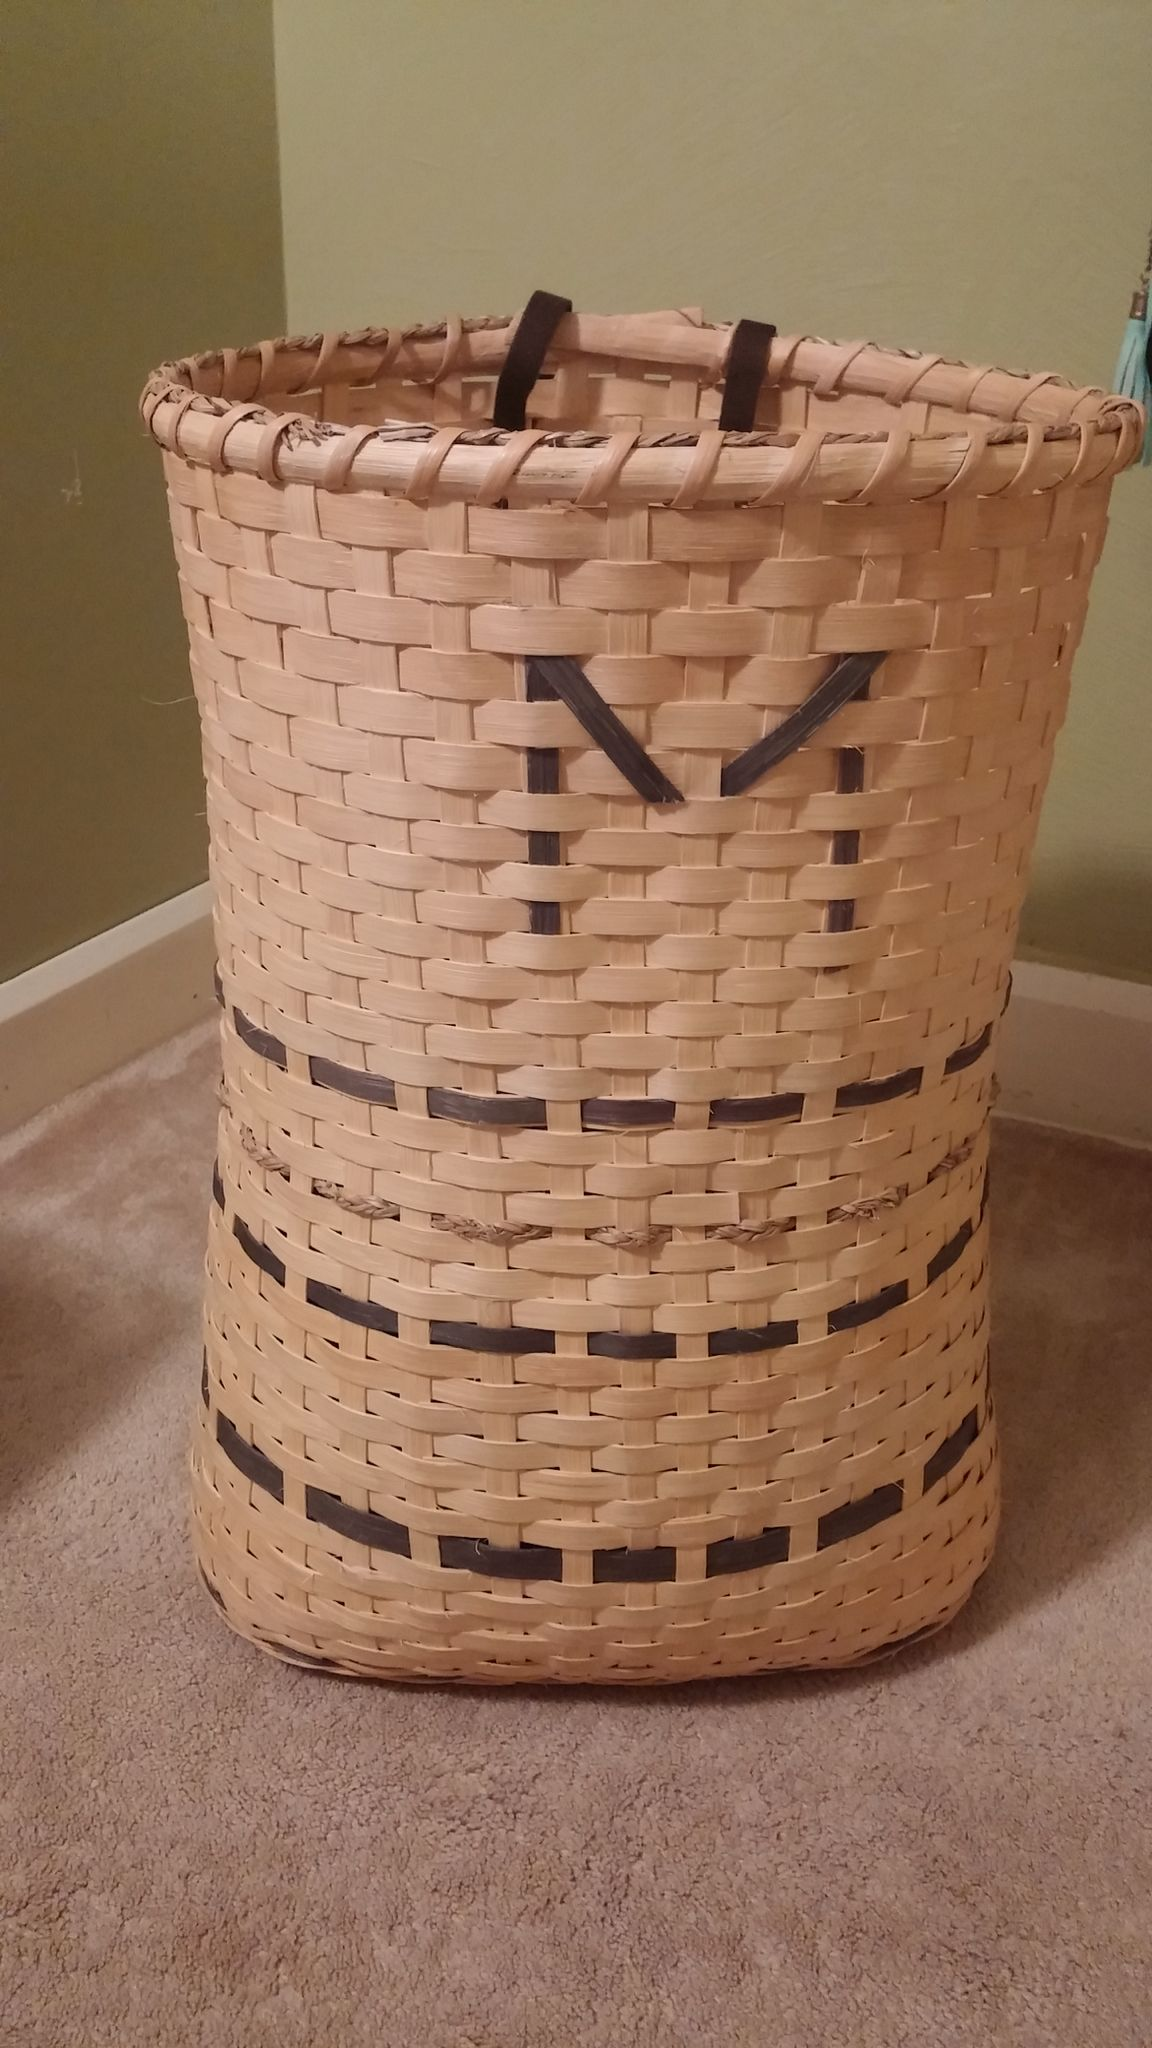 Nicole S College Laundry Basket College Laundry Basket College